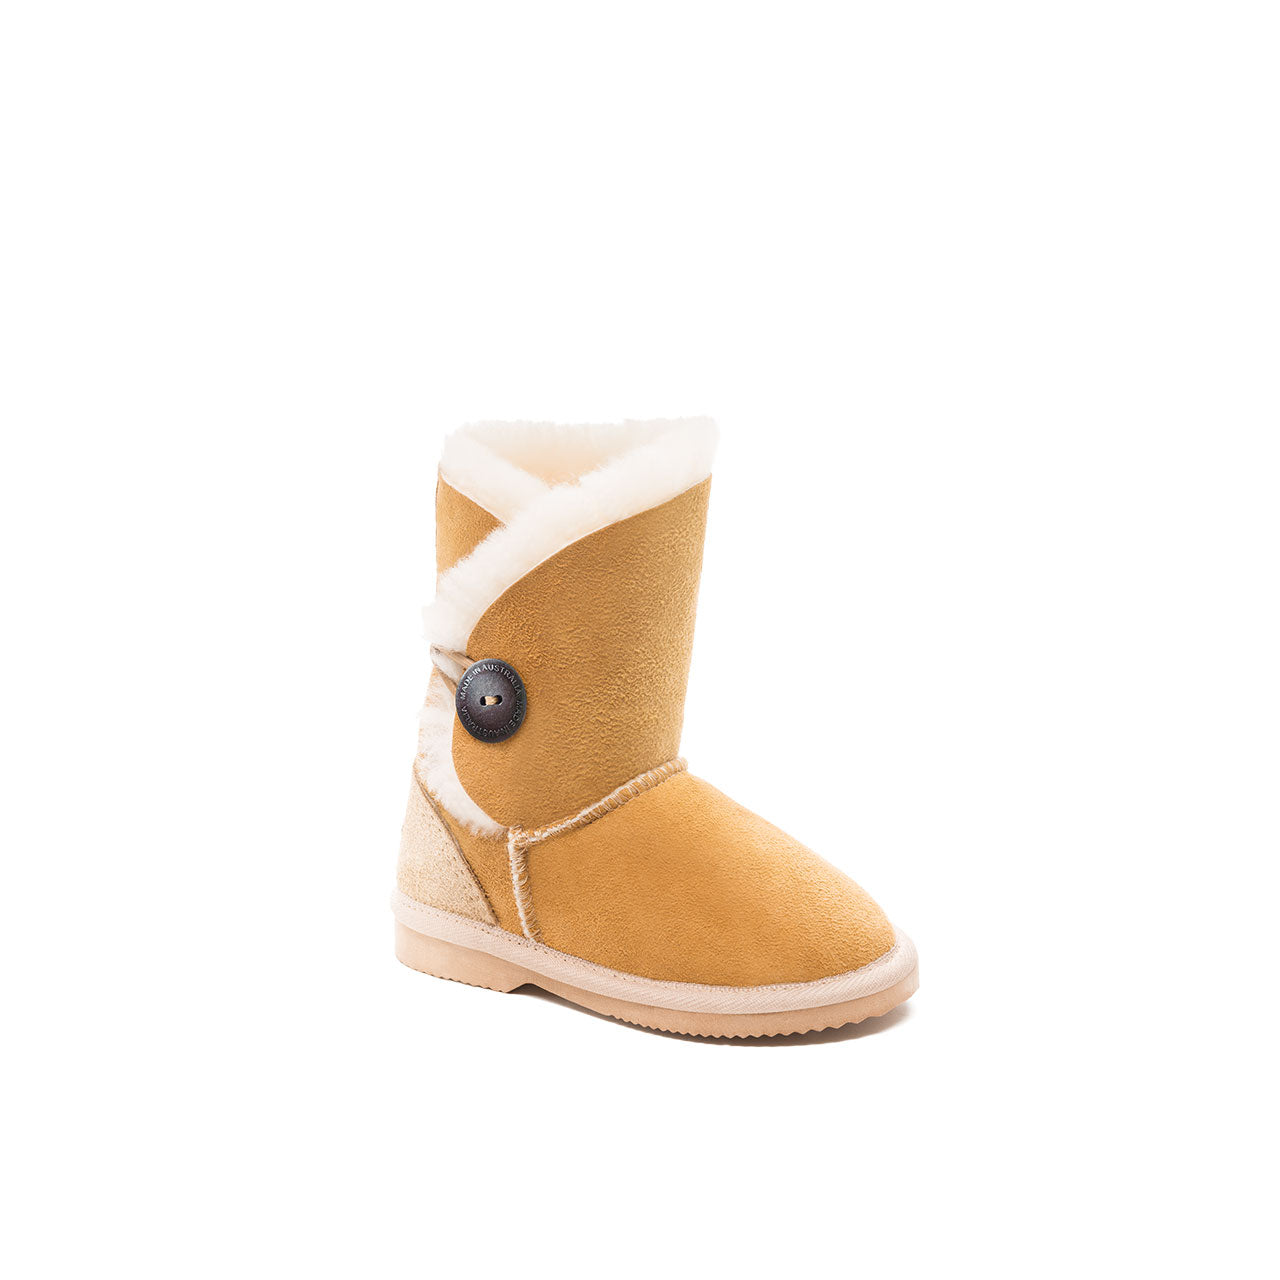 Children's Long Brighton Boots  | 100% Australian Made | Roman & Ludmila